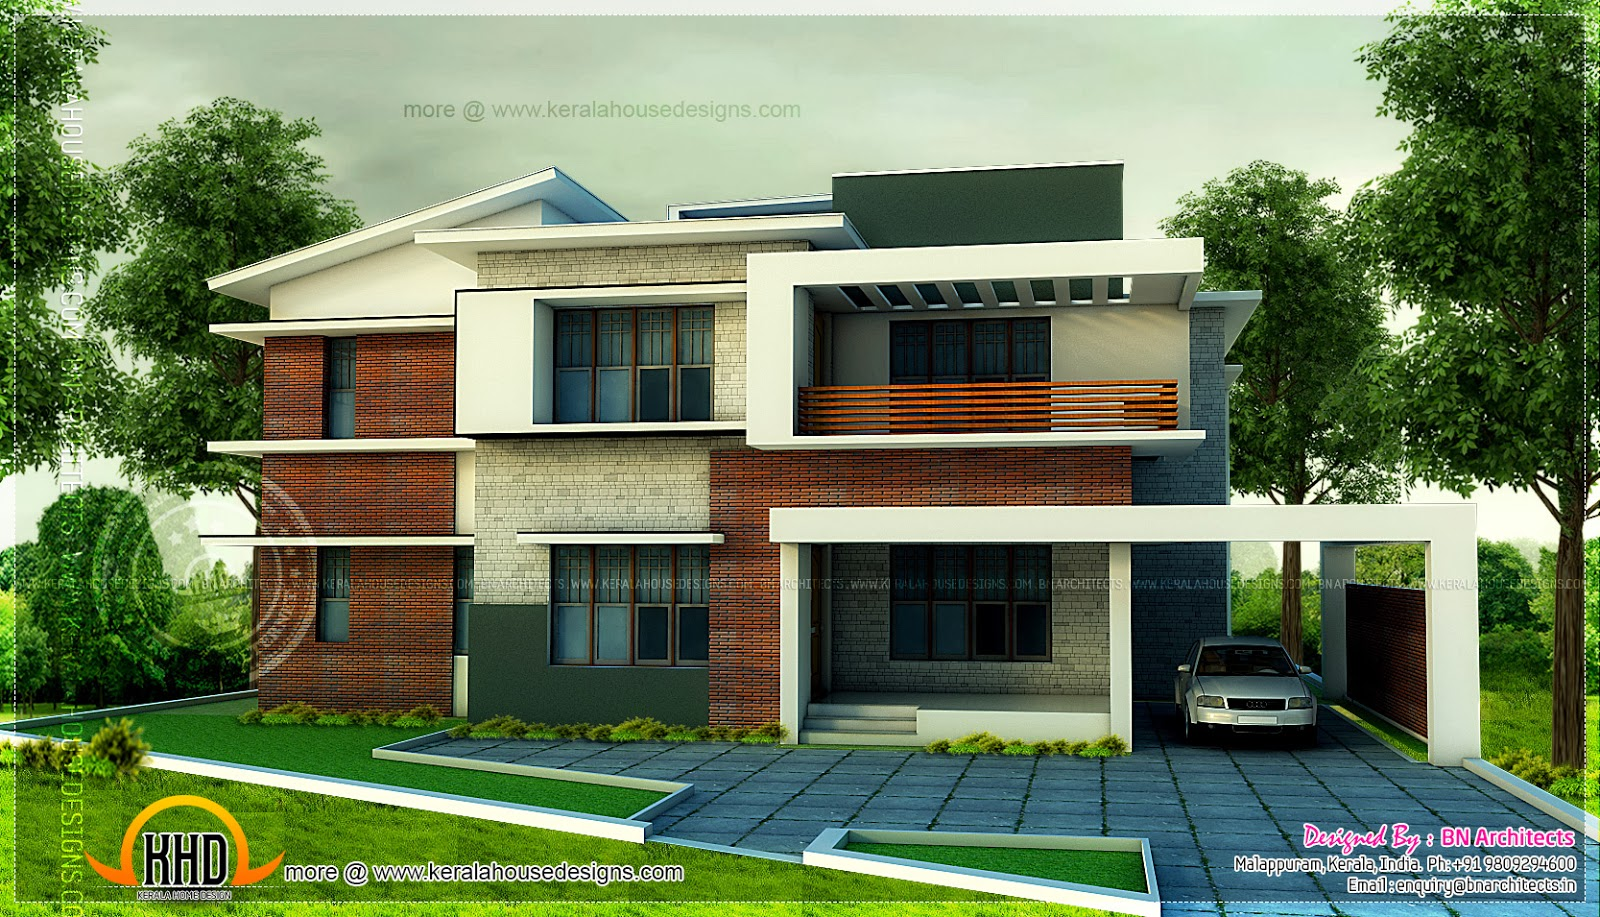 5 bedroom modern home in 3440 sq feet floor plan for 5 bedroom house ideas